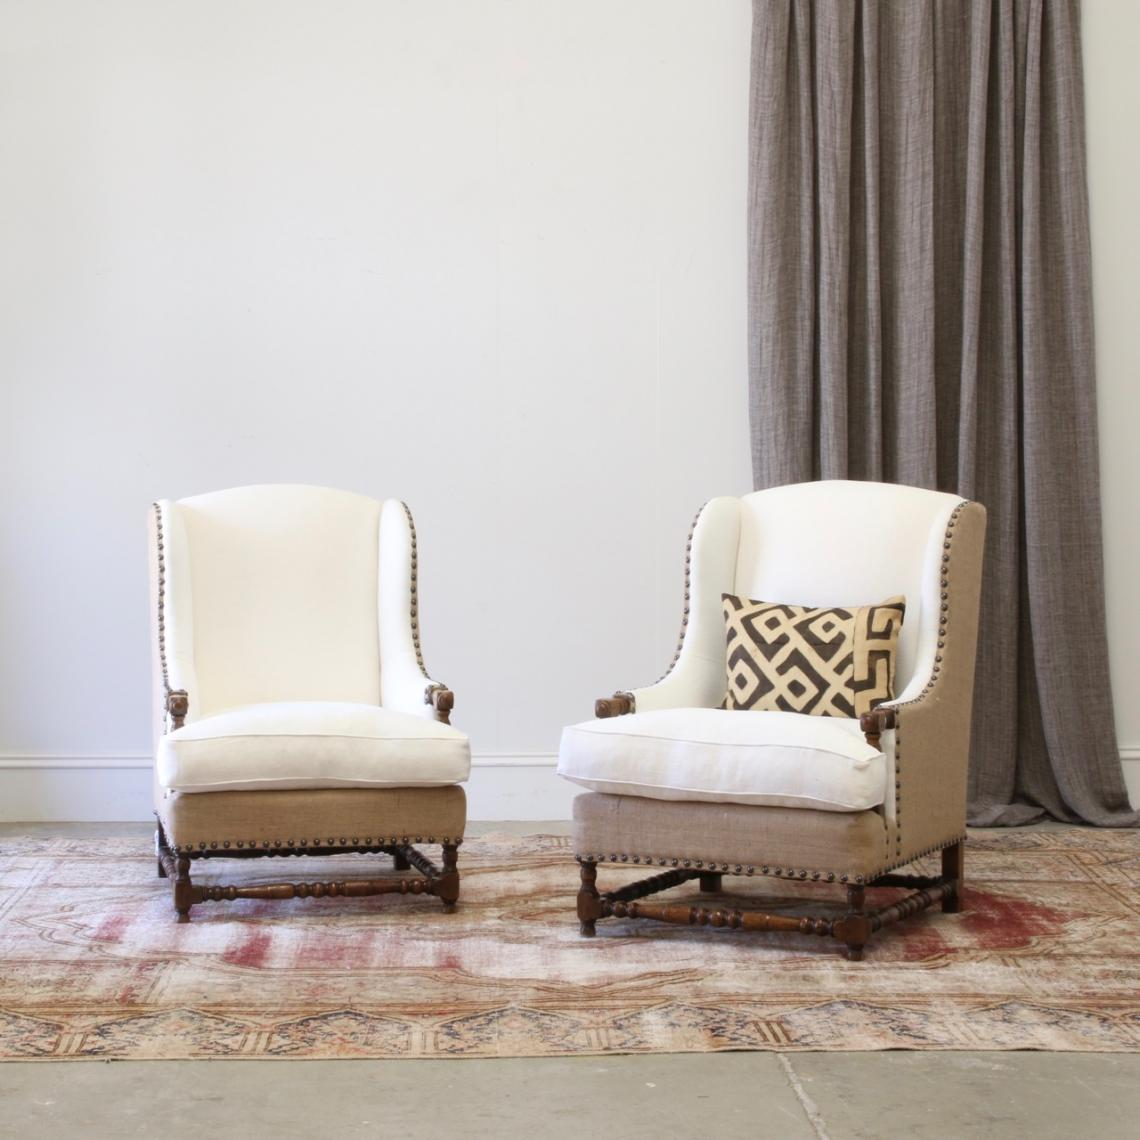 118-48 - Pair of Bobbin Legged Armchairs